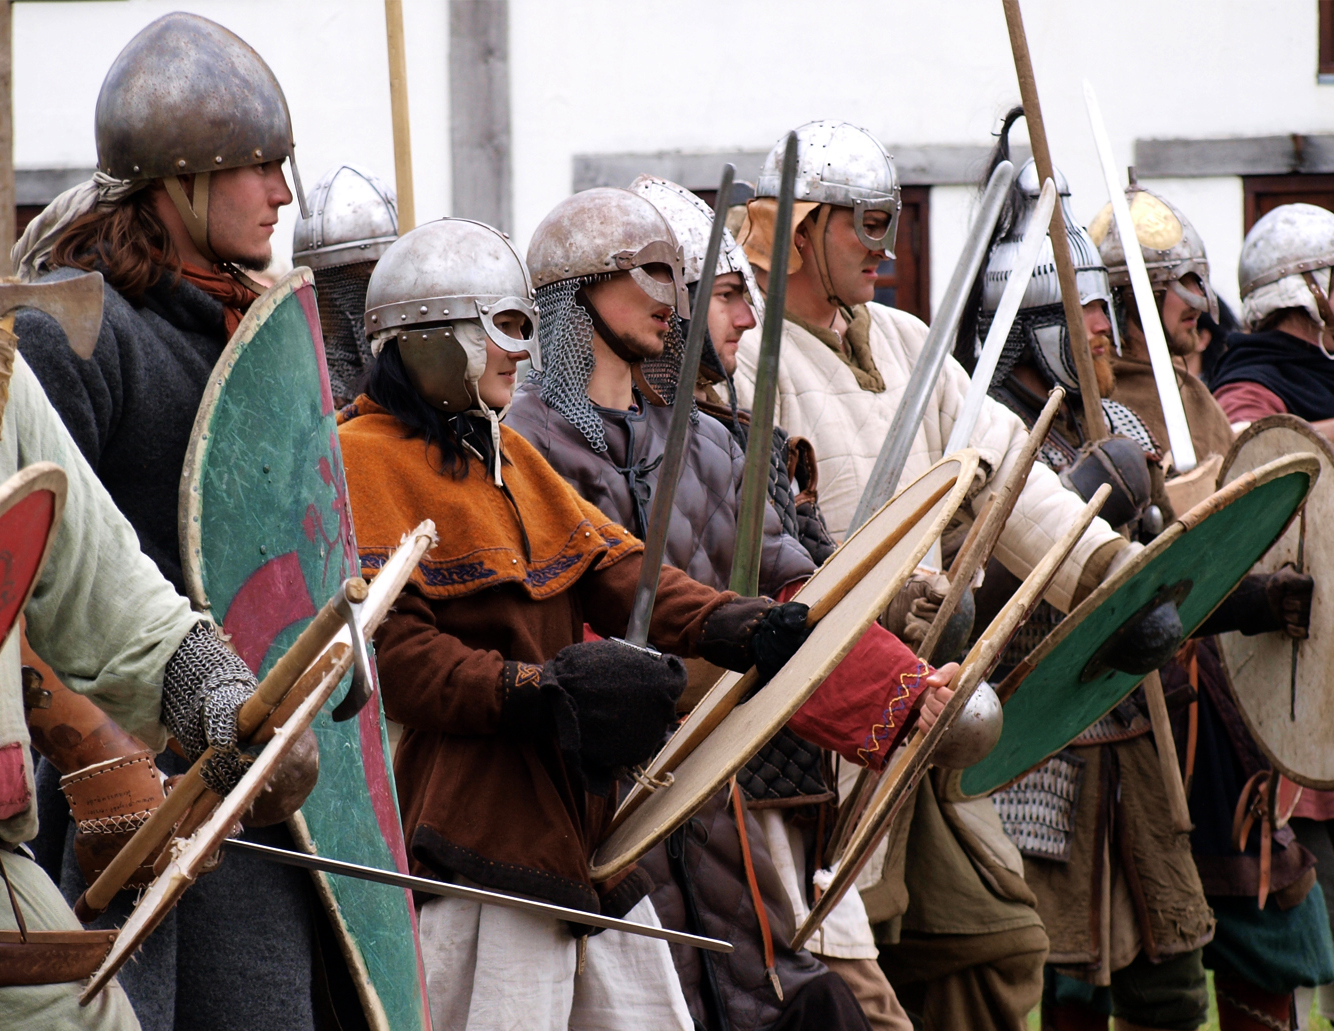 Skeletons found at mass burial site in Oxford could be '10th-century Viking raiders'